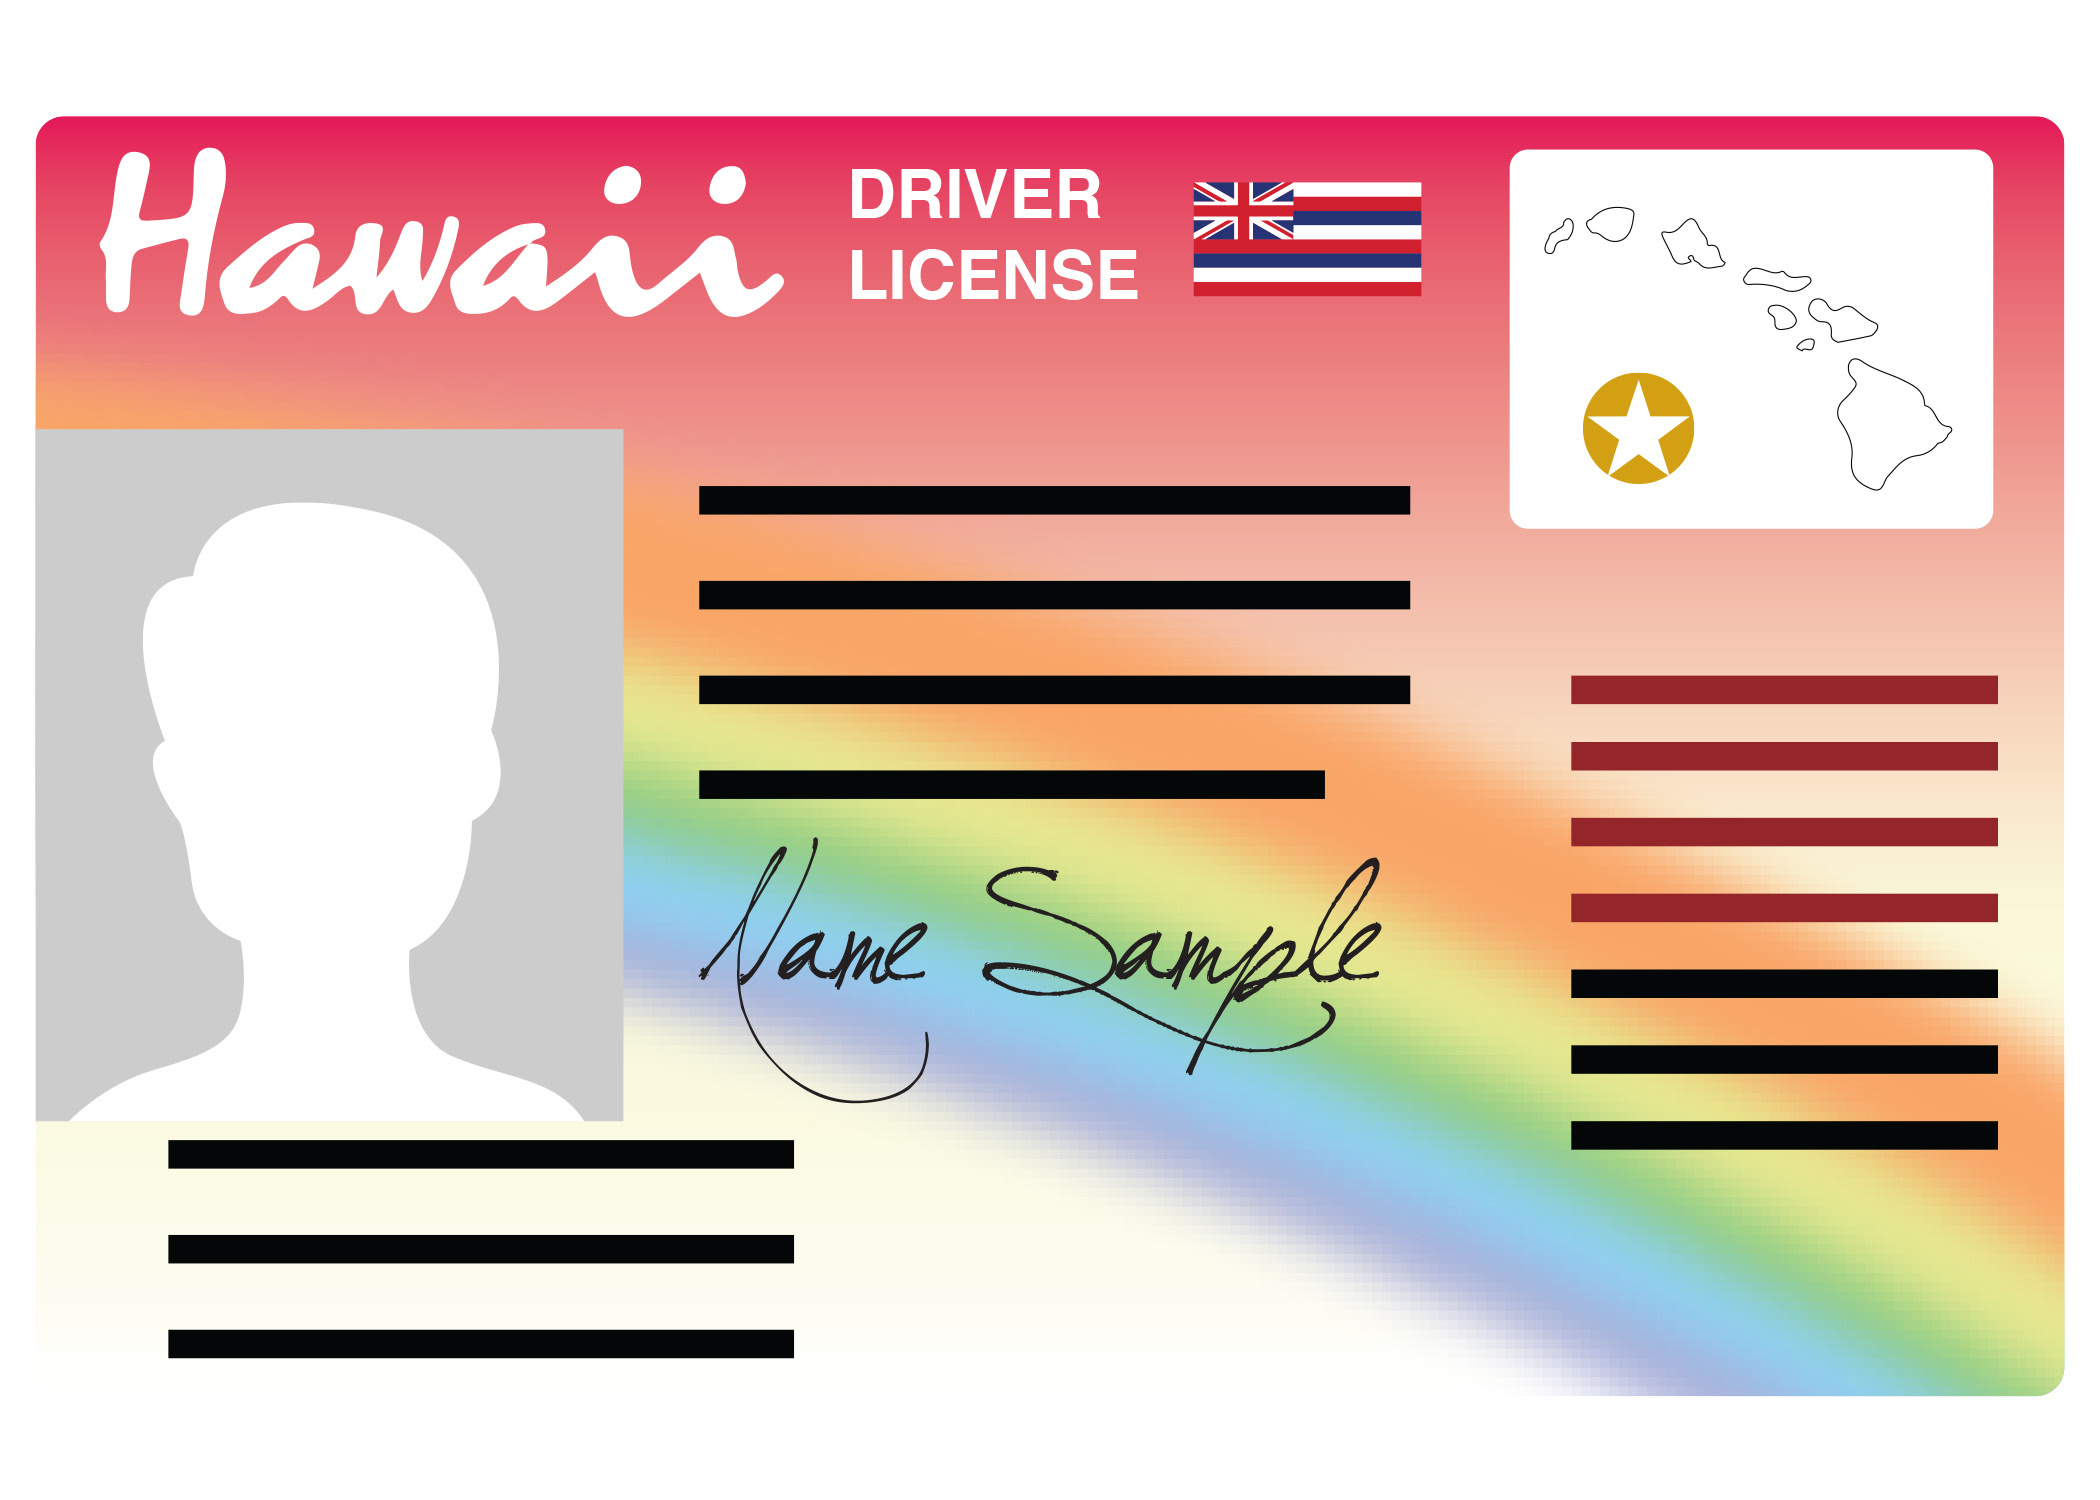 REAL ID Compliance Made Easy for 92,000 O'ahu Drivers